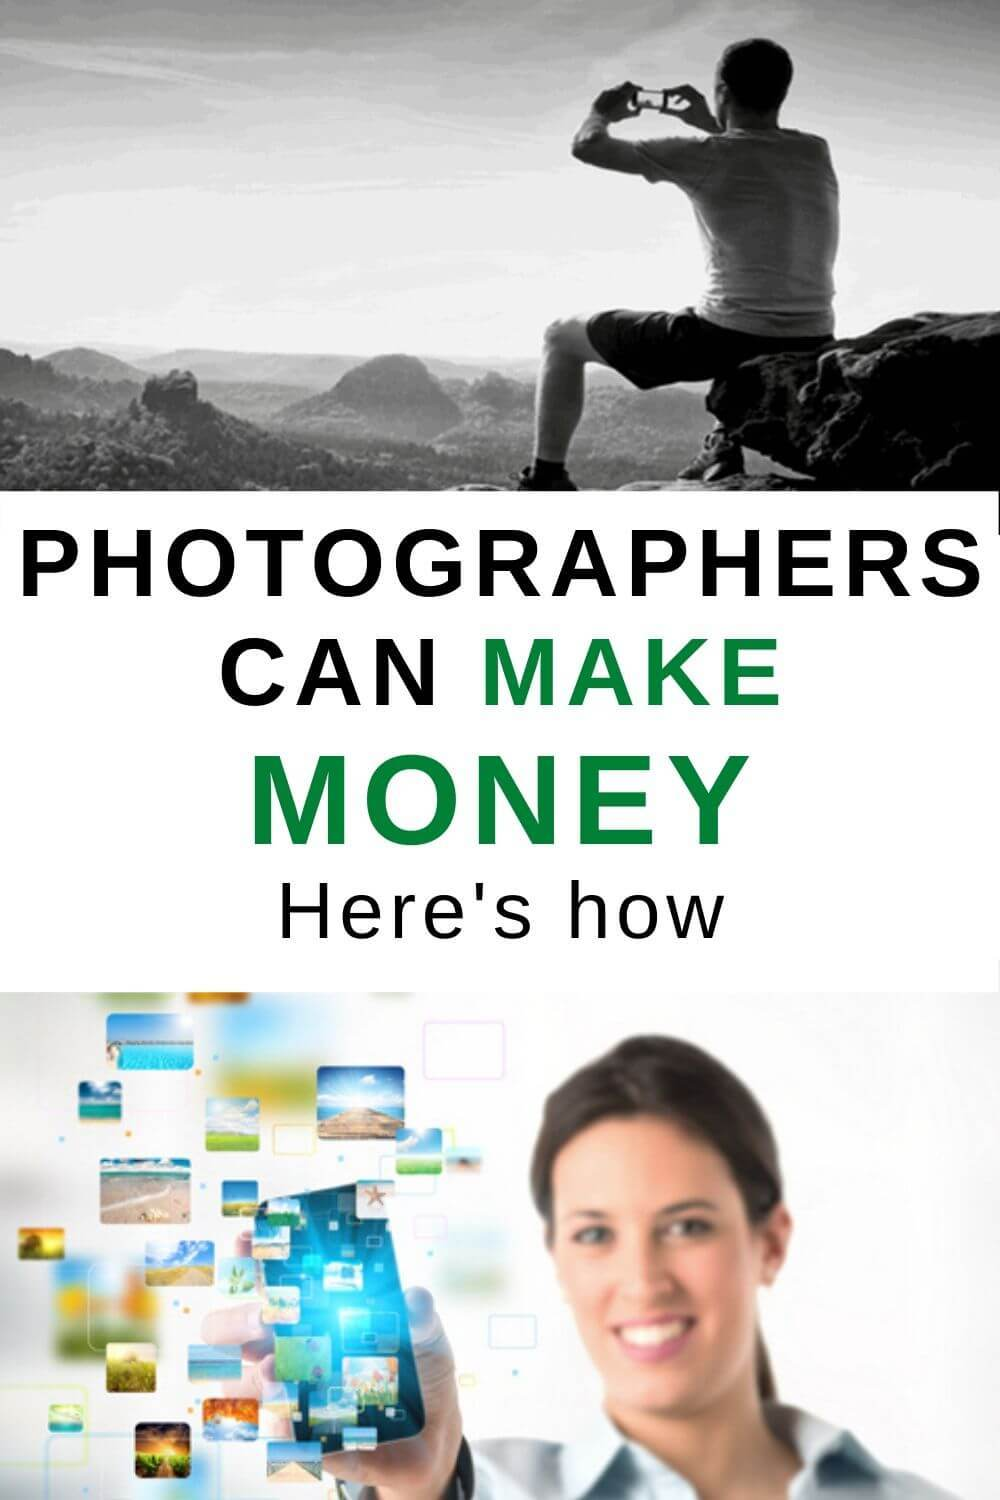 Photographers can make money - here's how